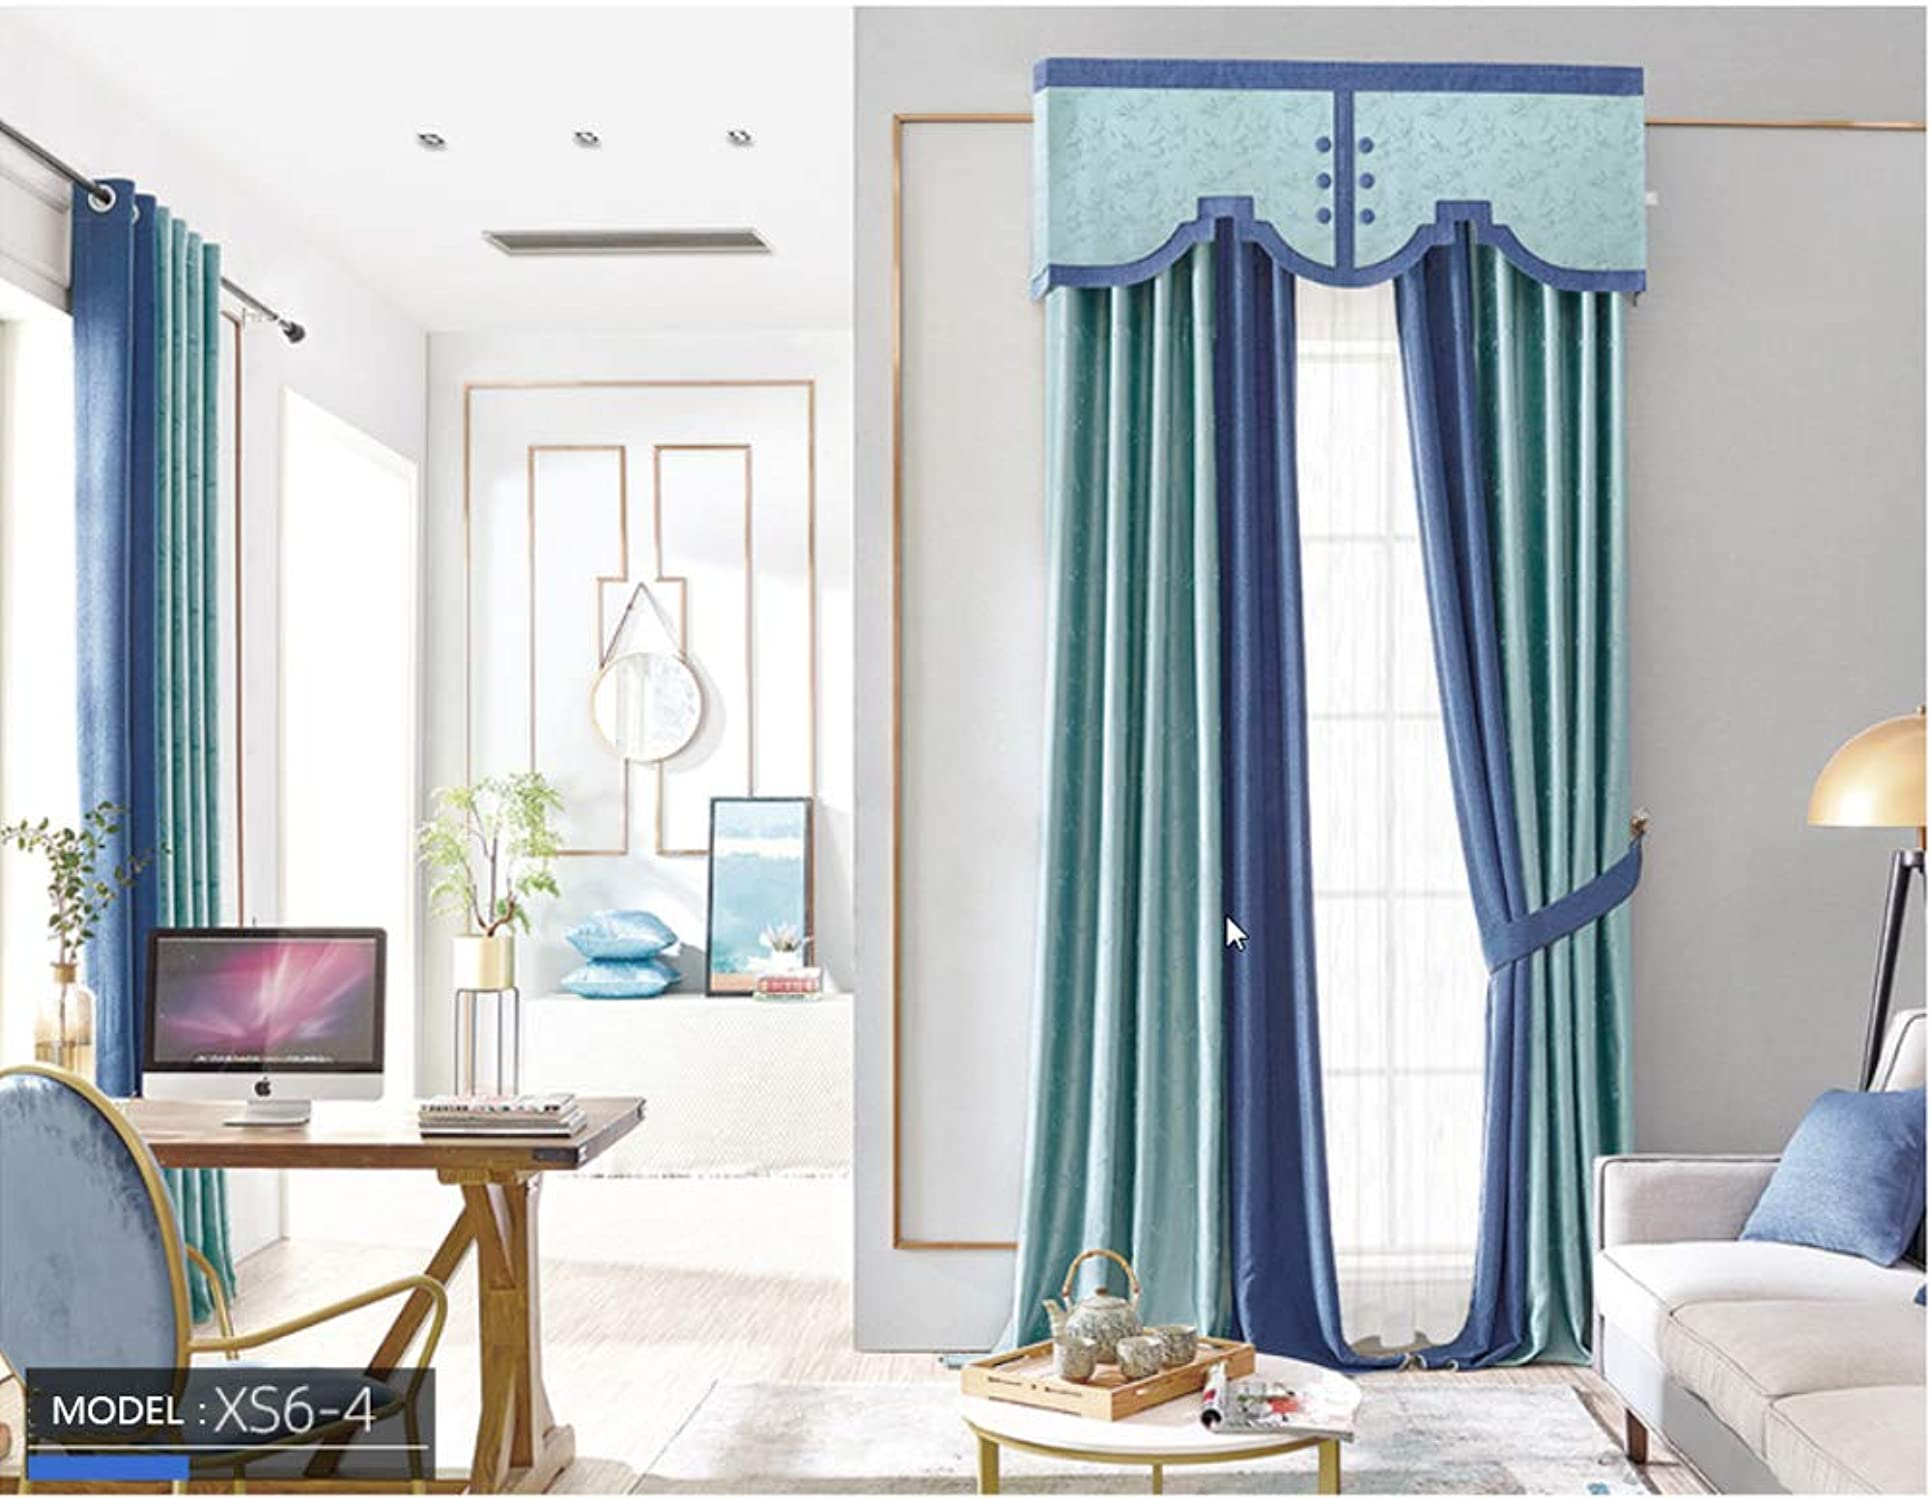 barato AZHYY Essentials Essentials Essentials 2 Piece negroout Curtains Ojales negroout Curtain-160x132  60% de descuento